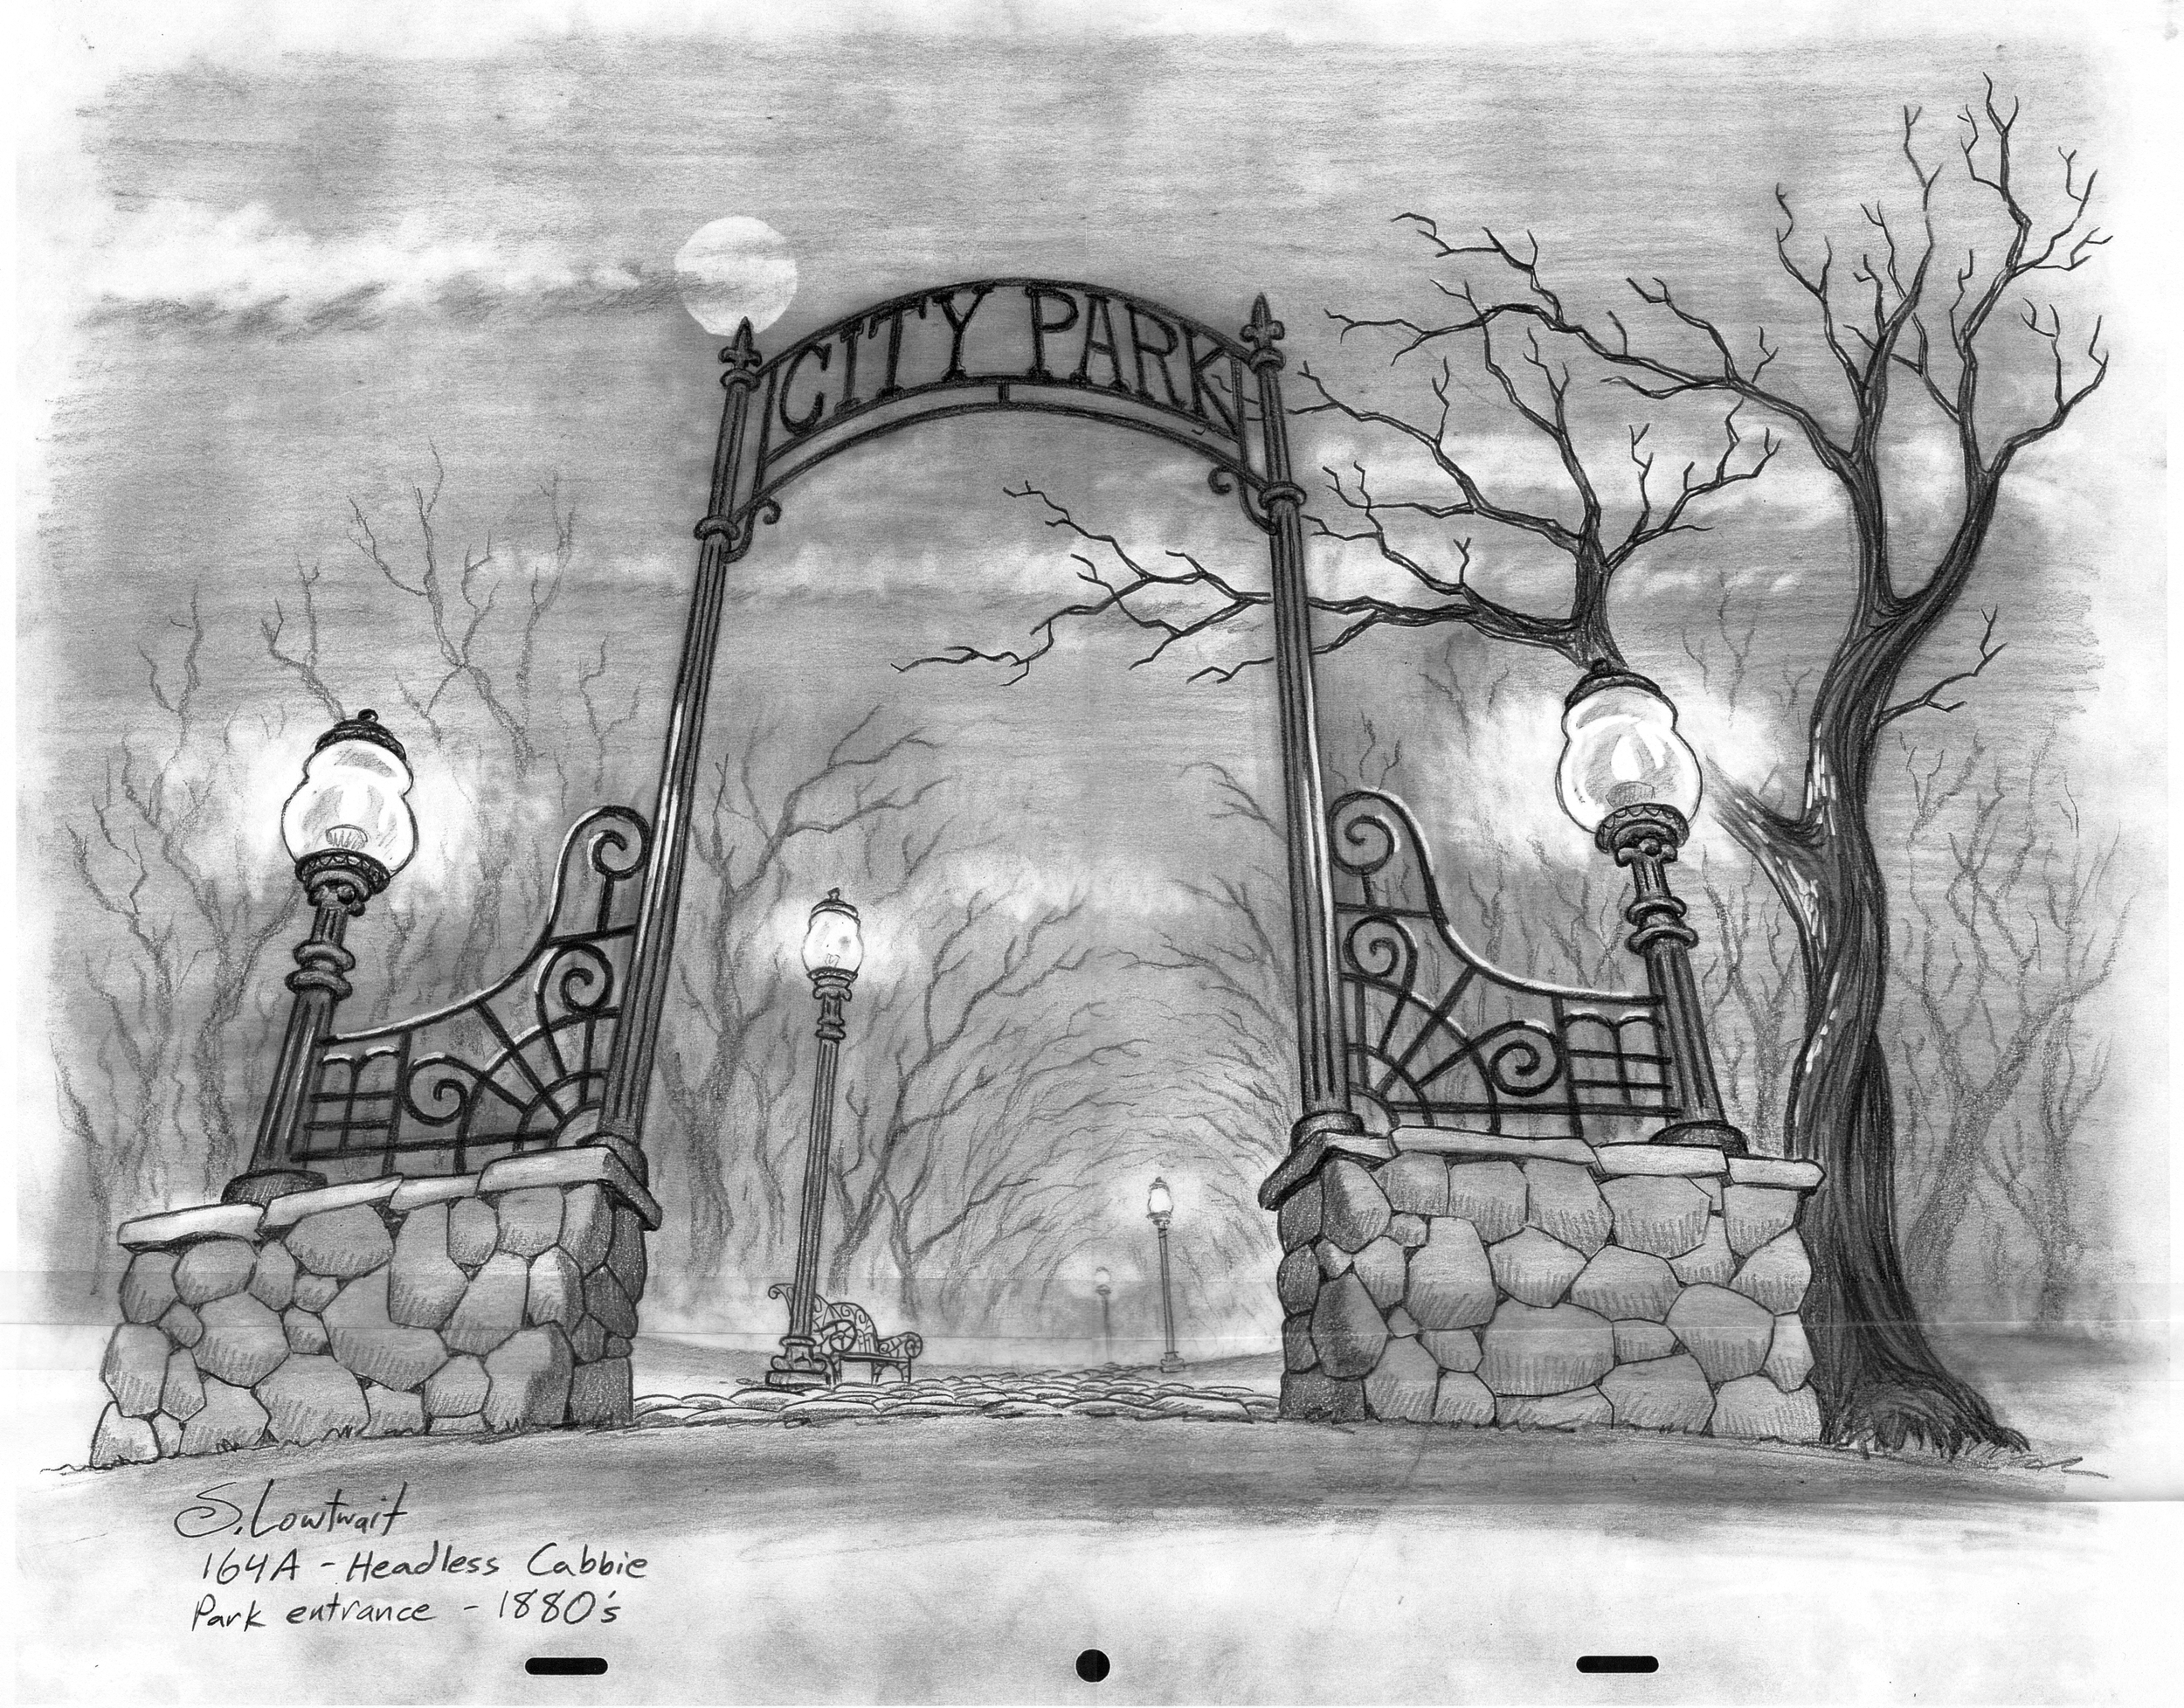 An ominous city park entrance for one of the urban legend episodes.